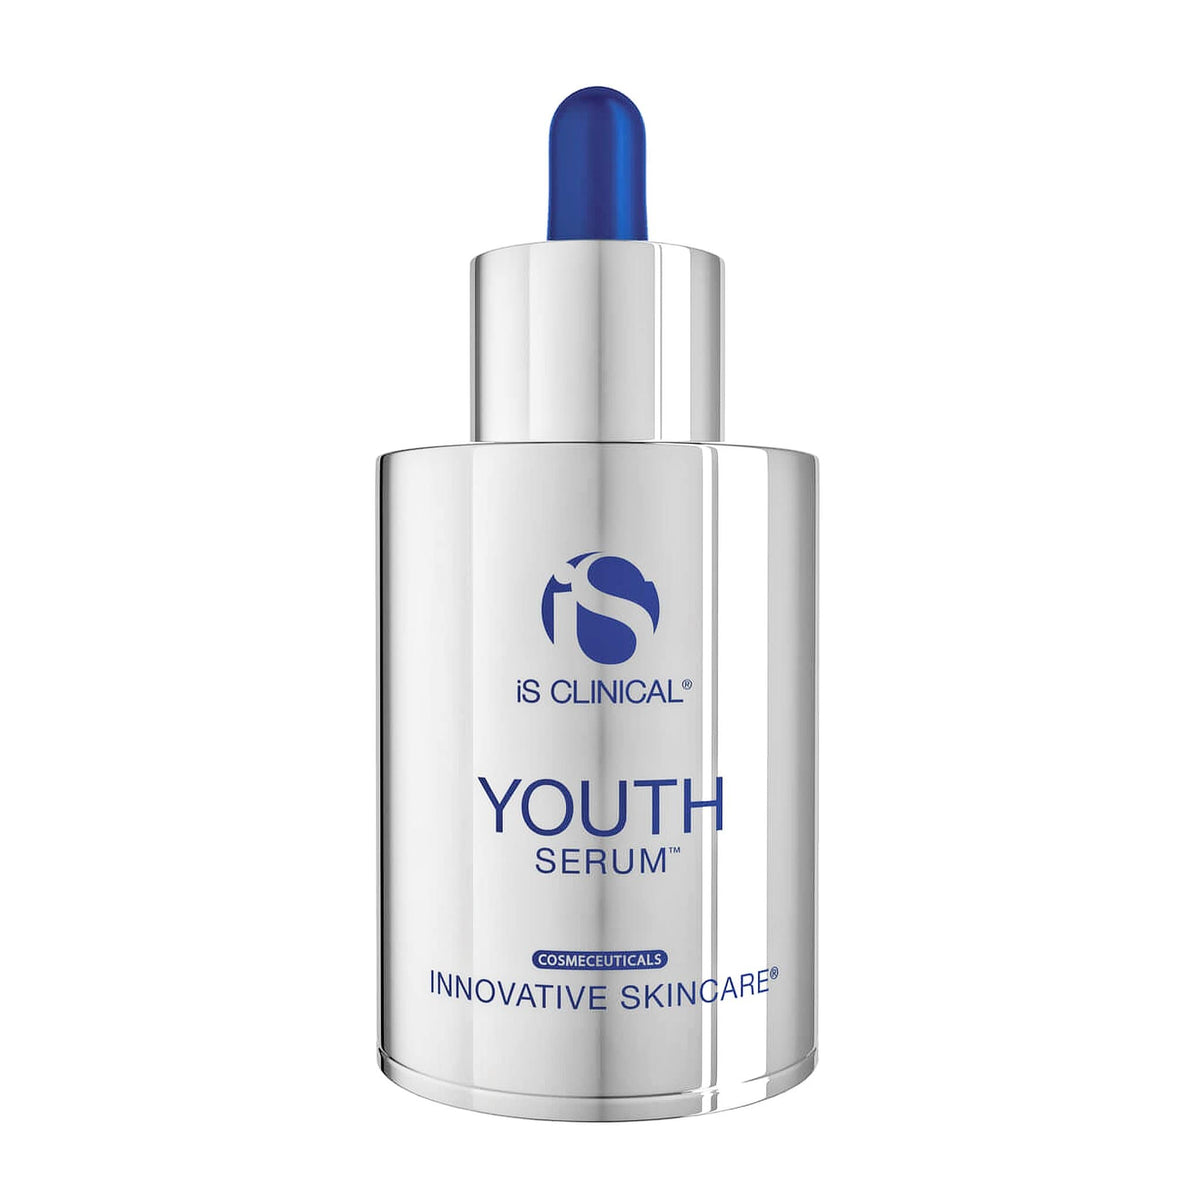 IS CLINICAL - YOUTH SERUM